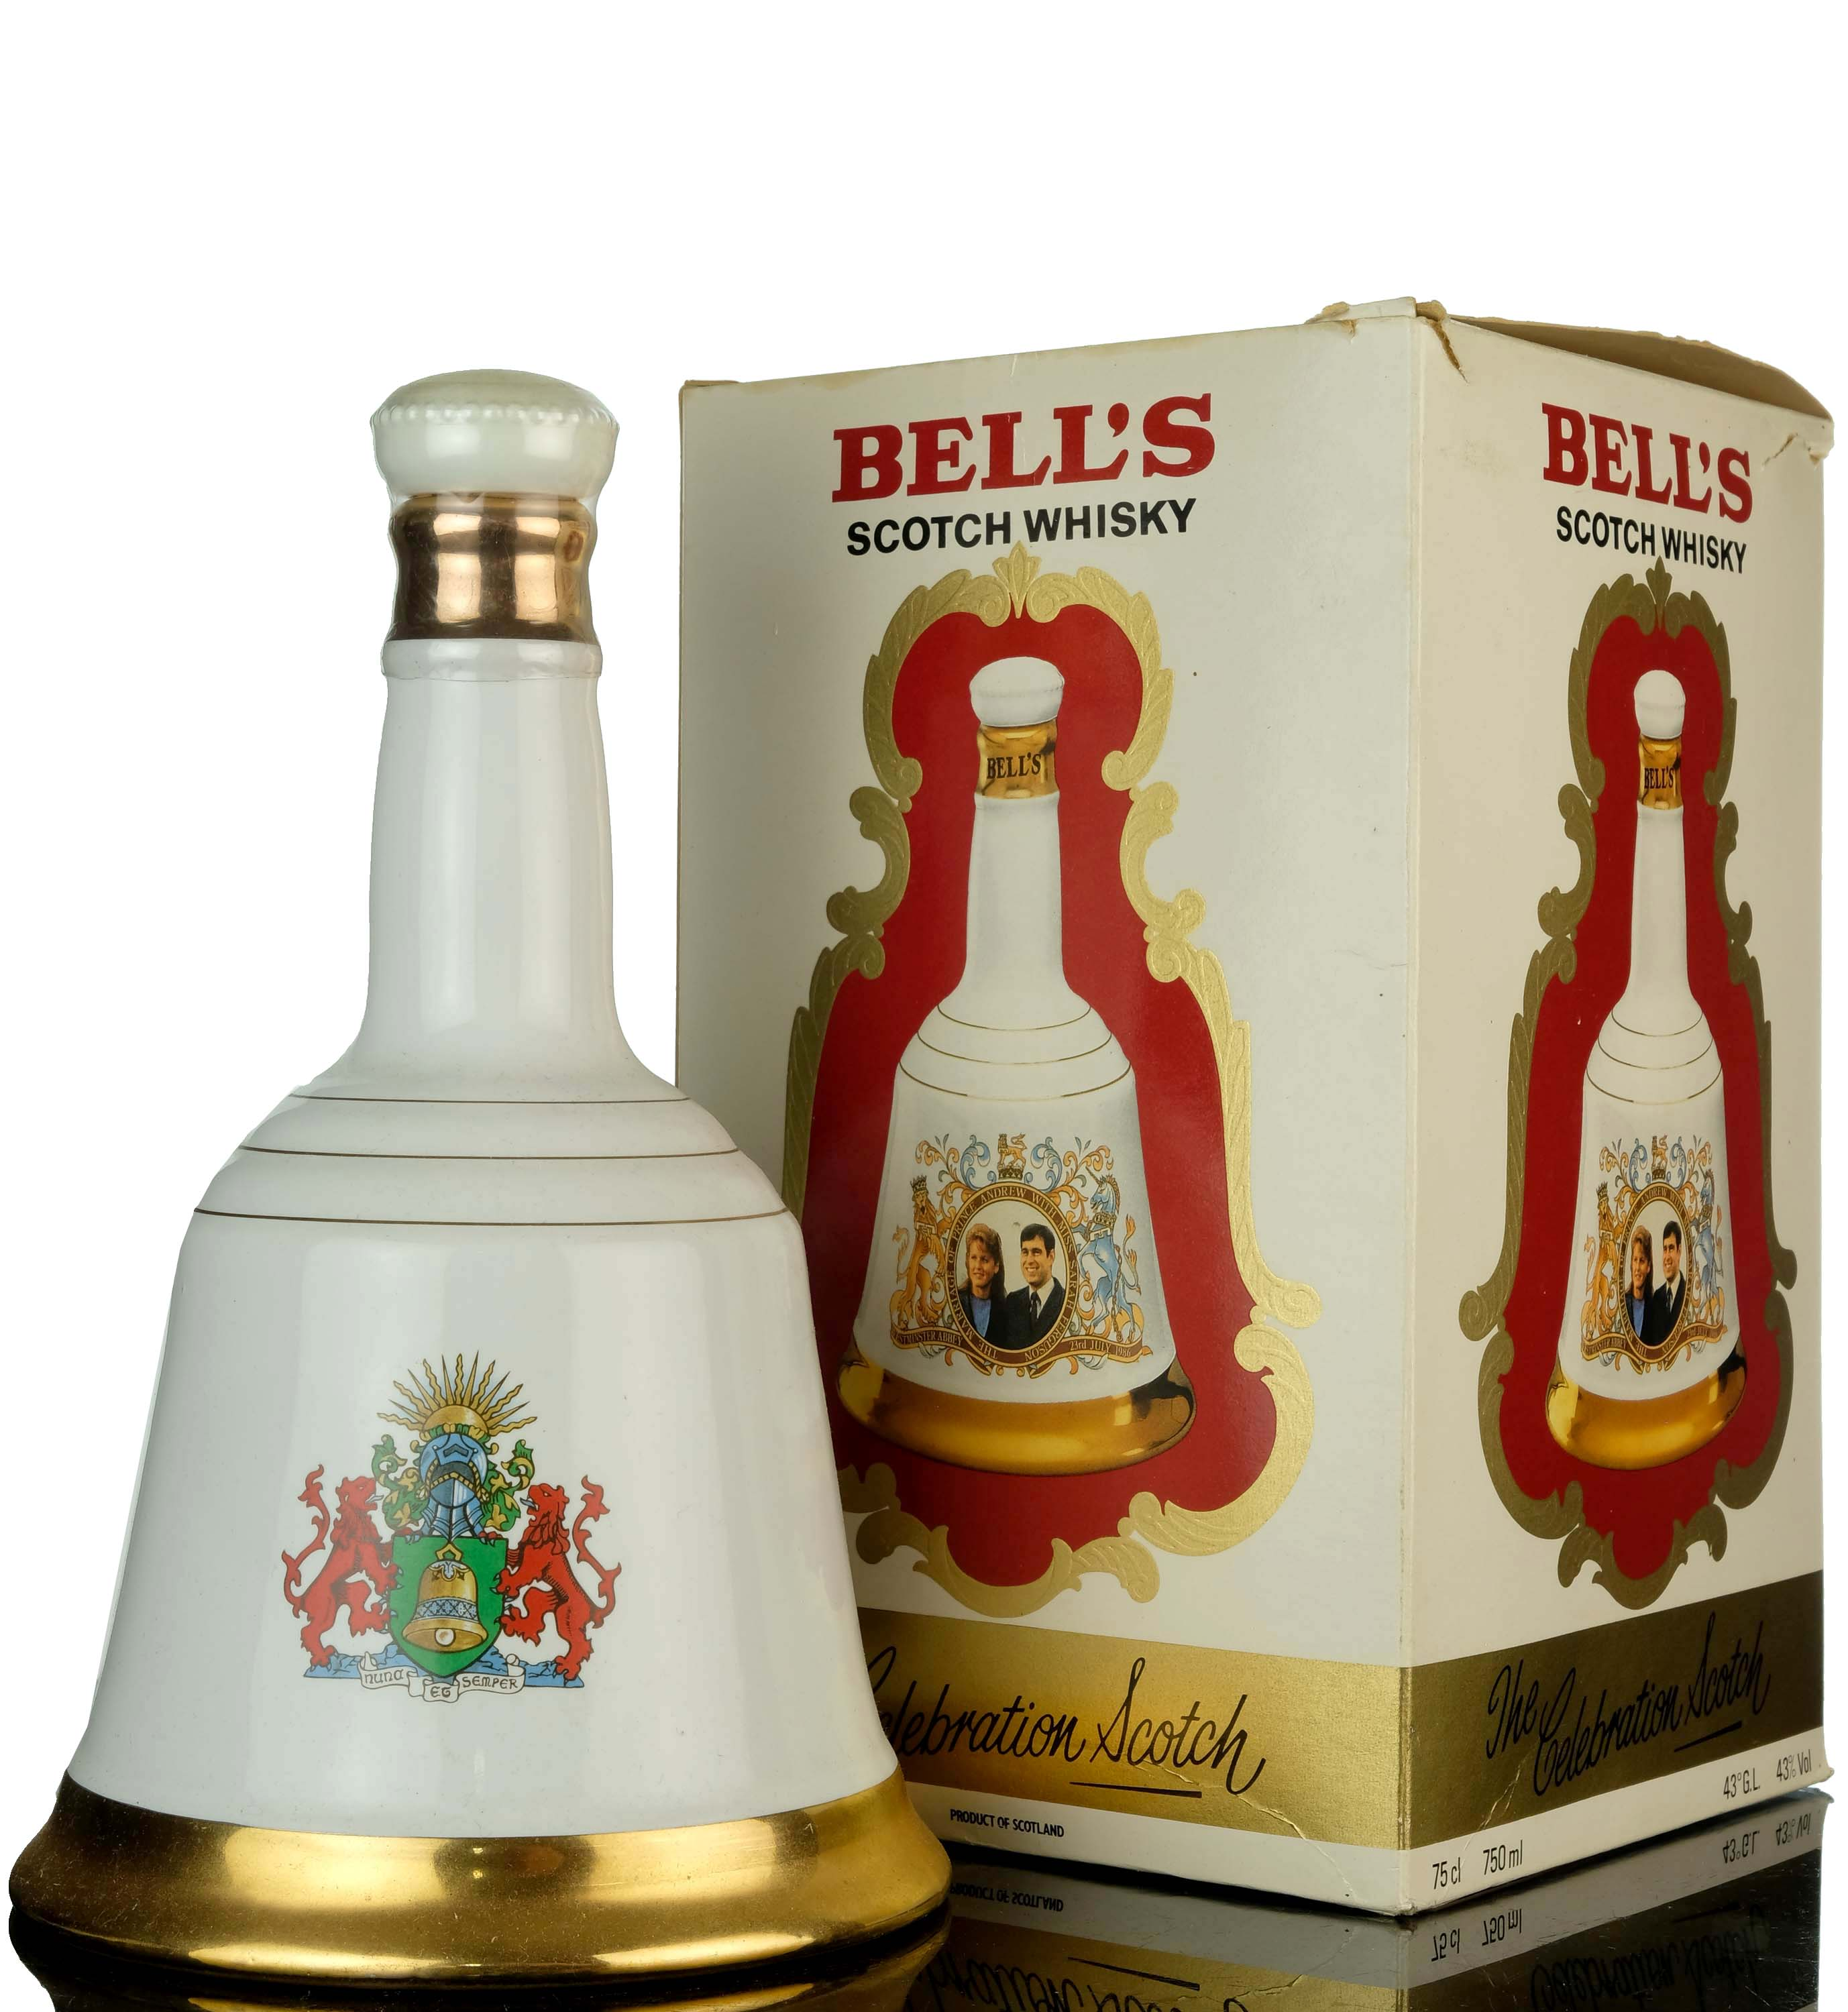 bells to commemorate the marriage of h.r.h prince andrew with miss sarah ferguson